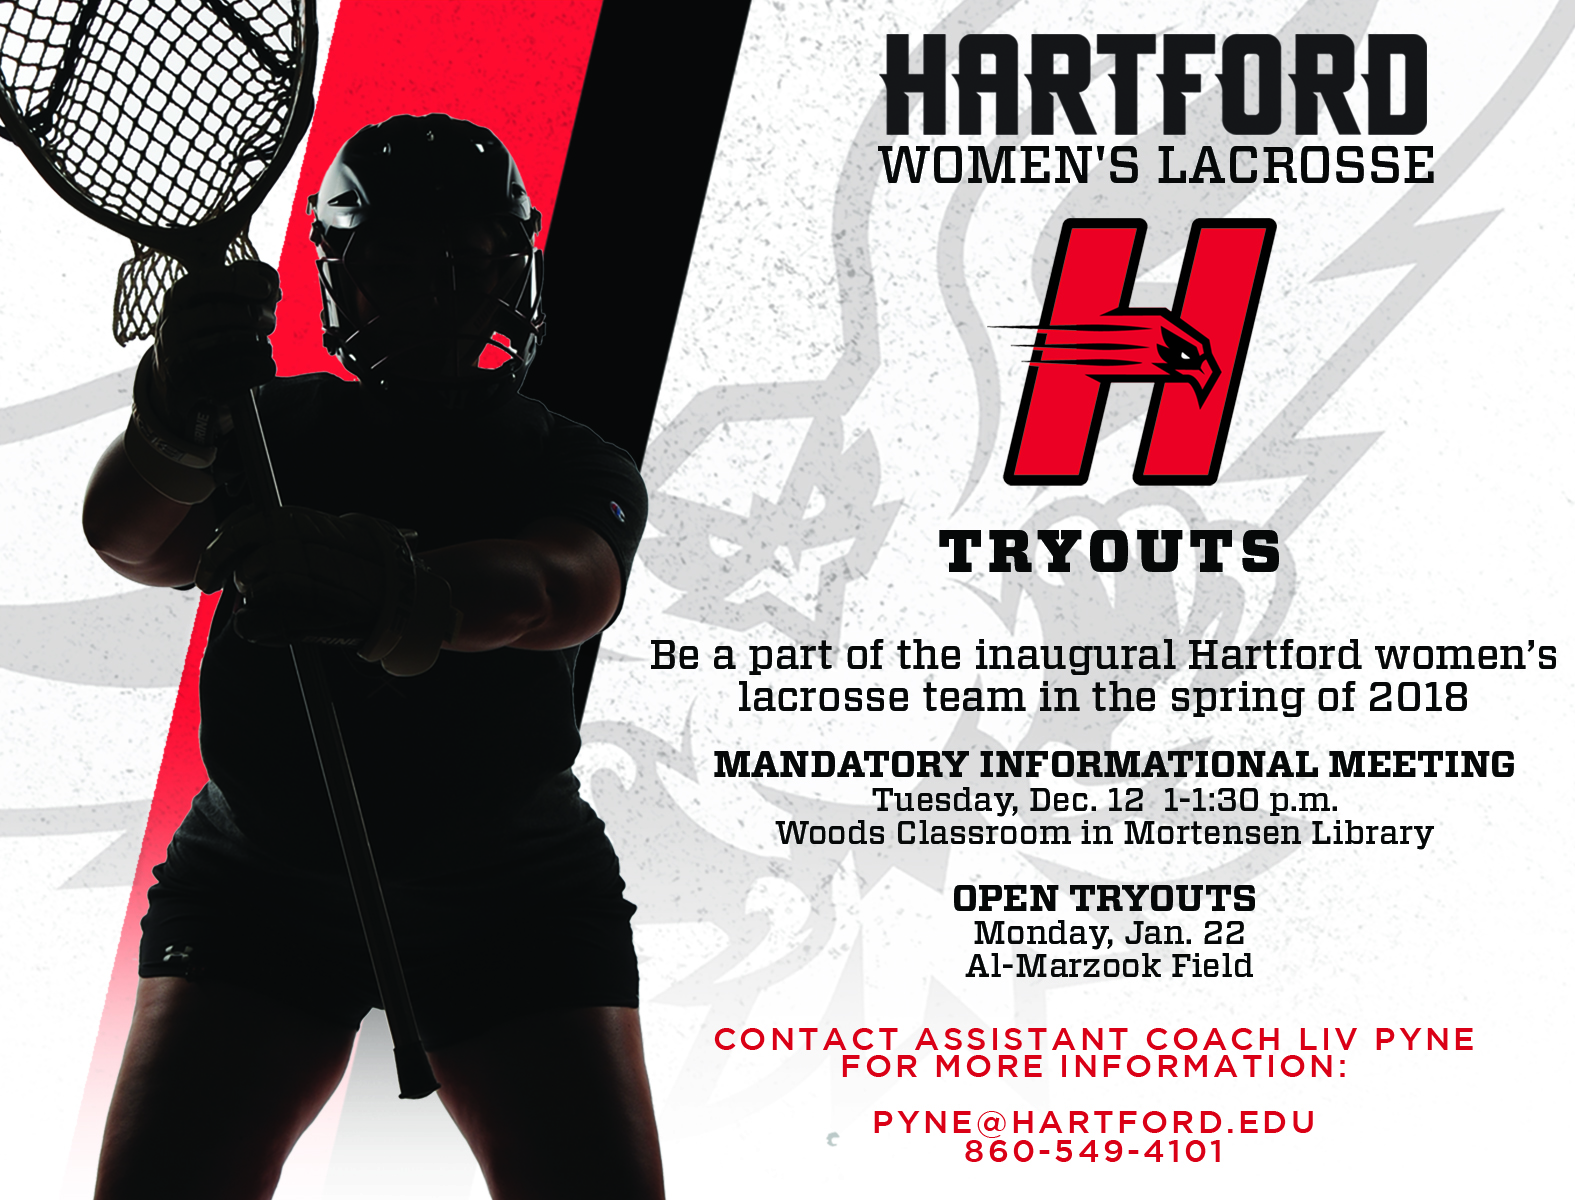 Hartford Hawks Athletics - Women's Lacrosse to Hold Open Tryout for